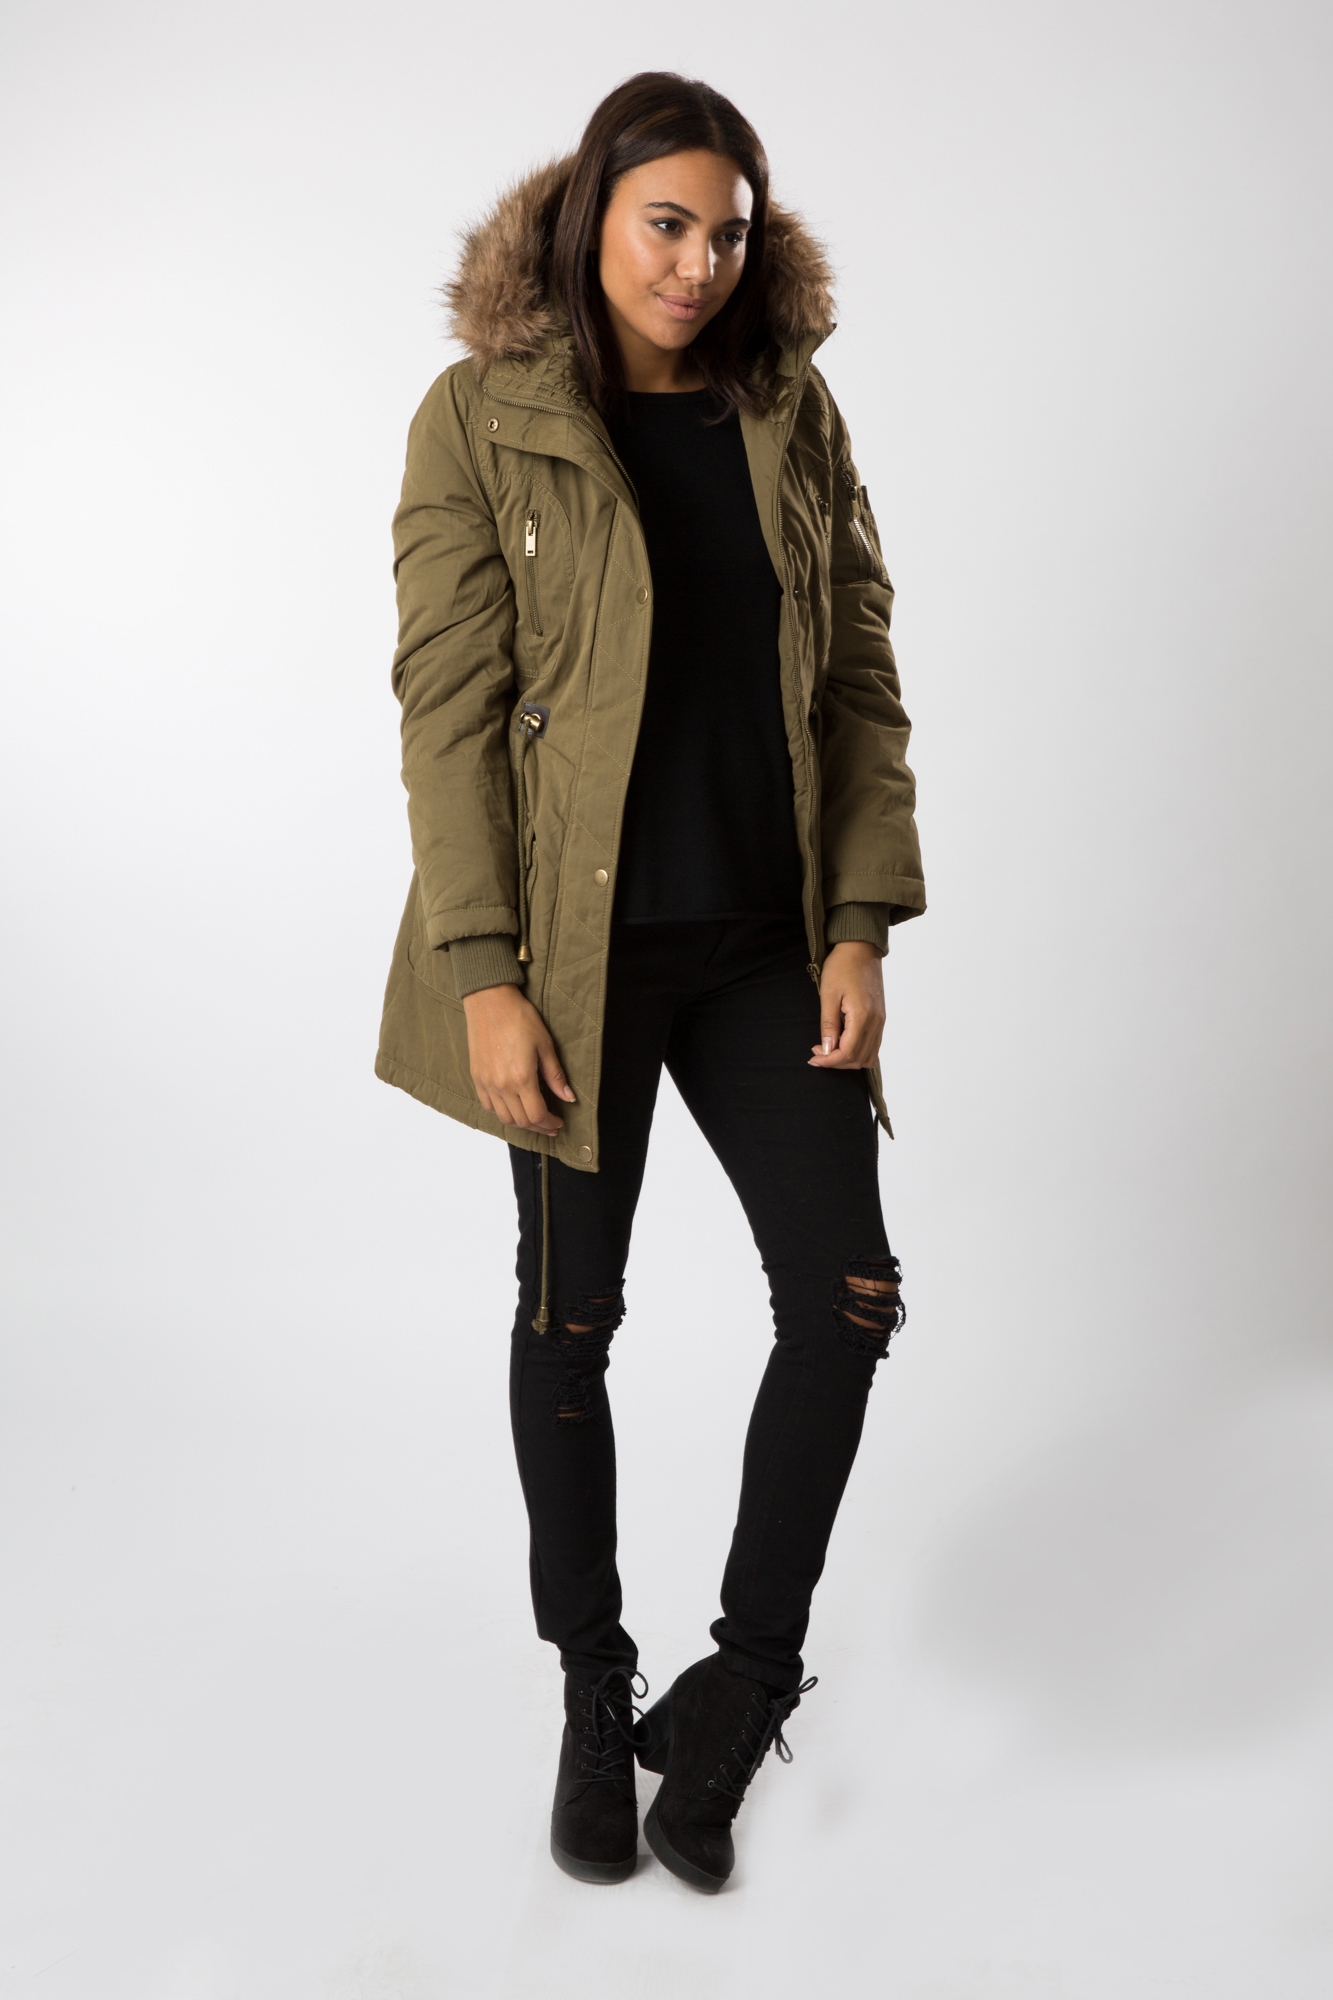 Khaki Faux Fur Lined Hooded Parka Jacket - Best Hood 2017